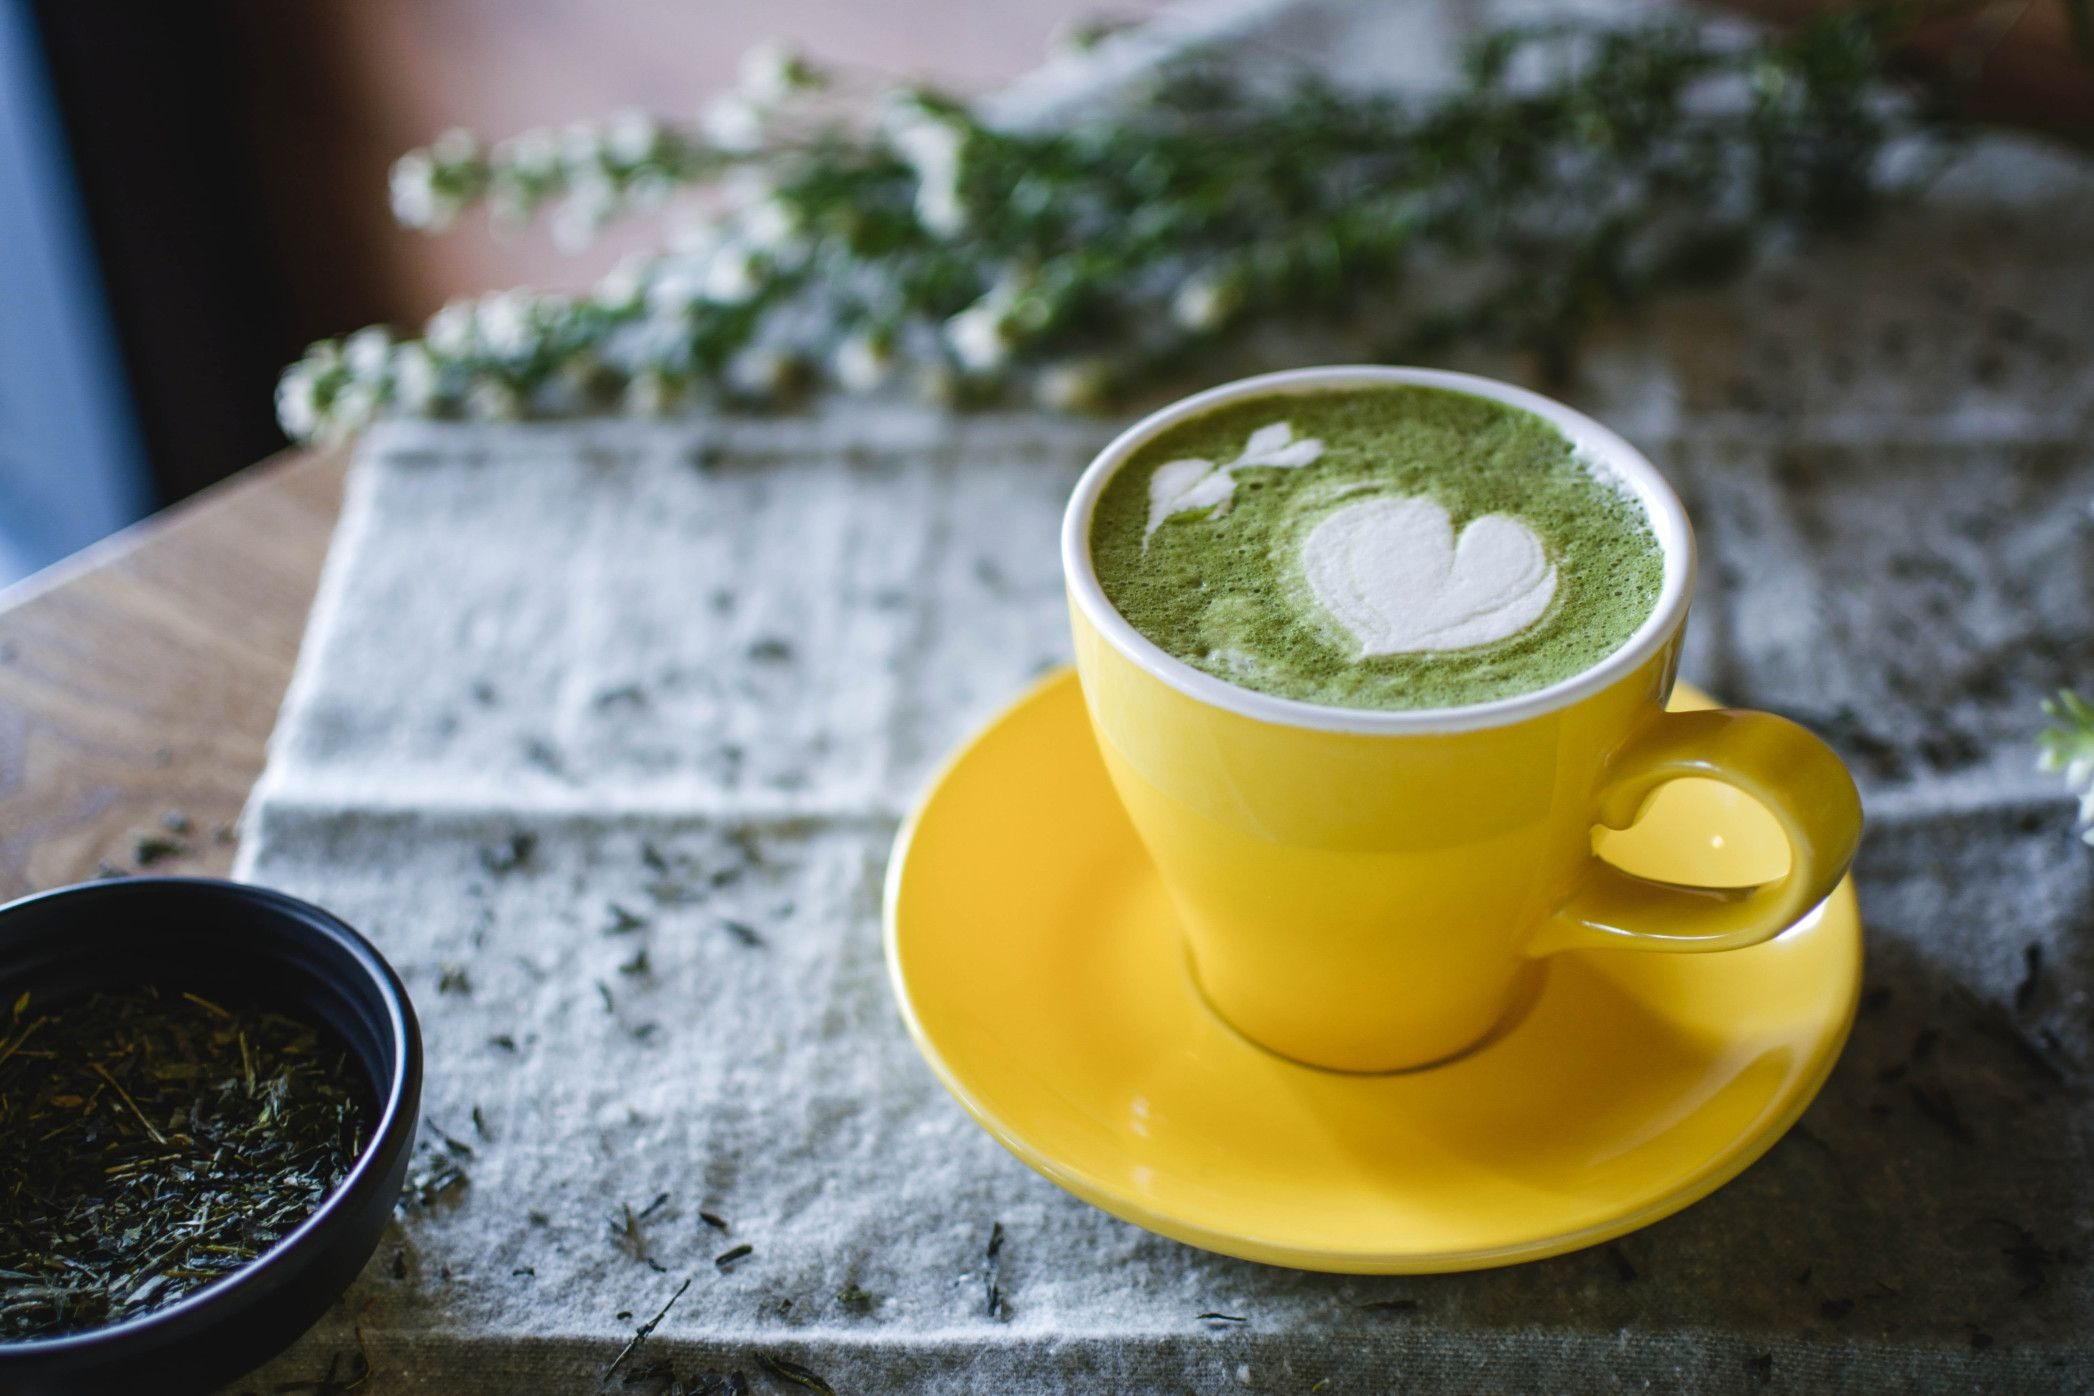 Health Benefits of Tea: How Different Types Compare